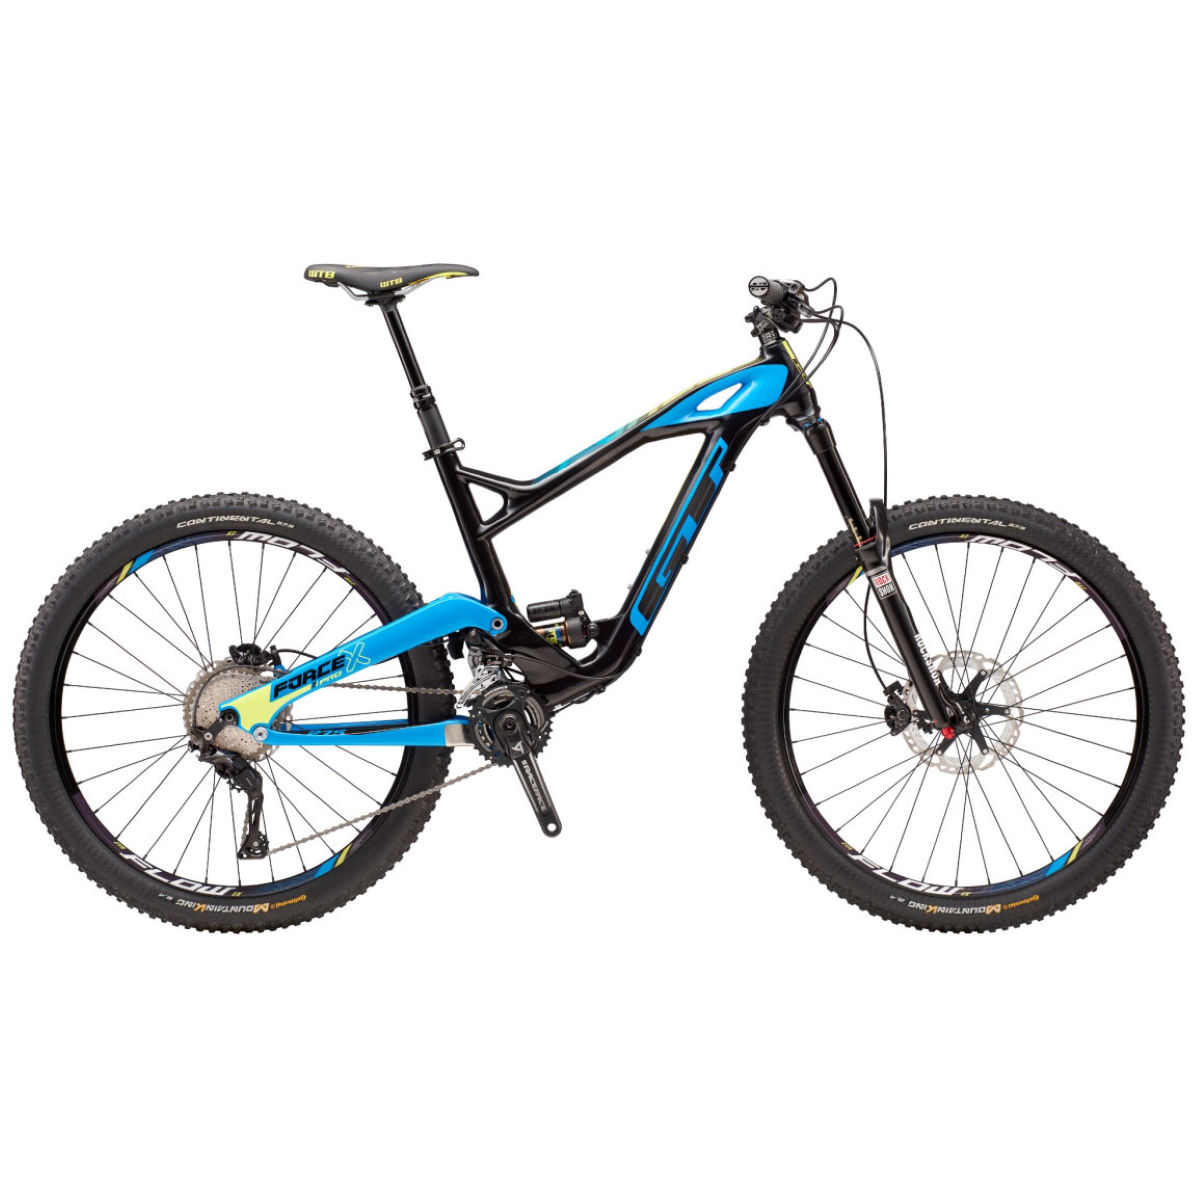 VTT GT Force Carbon Pro (2016) - Small Stock Bike Raw VTT tout suspendu